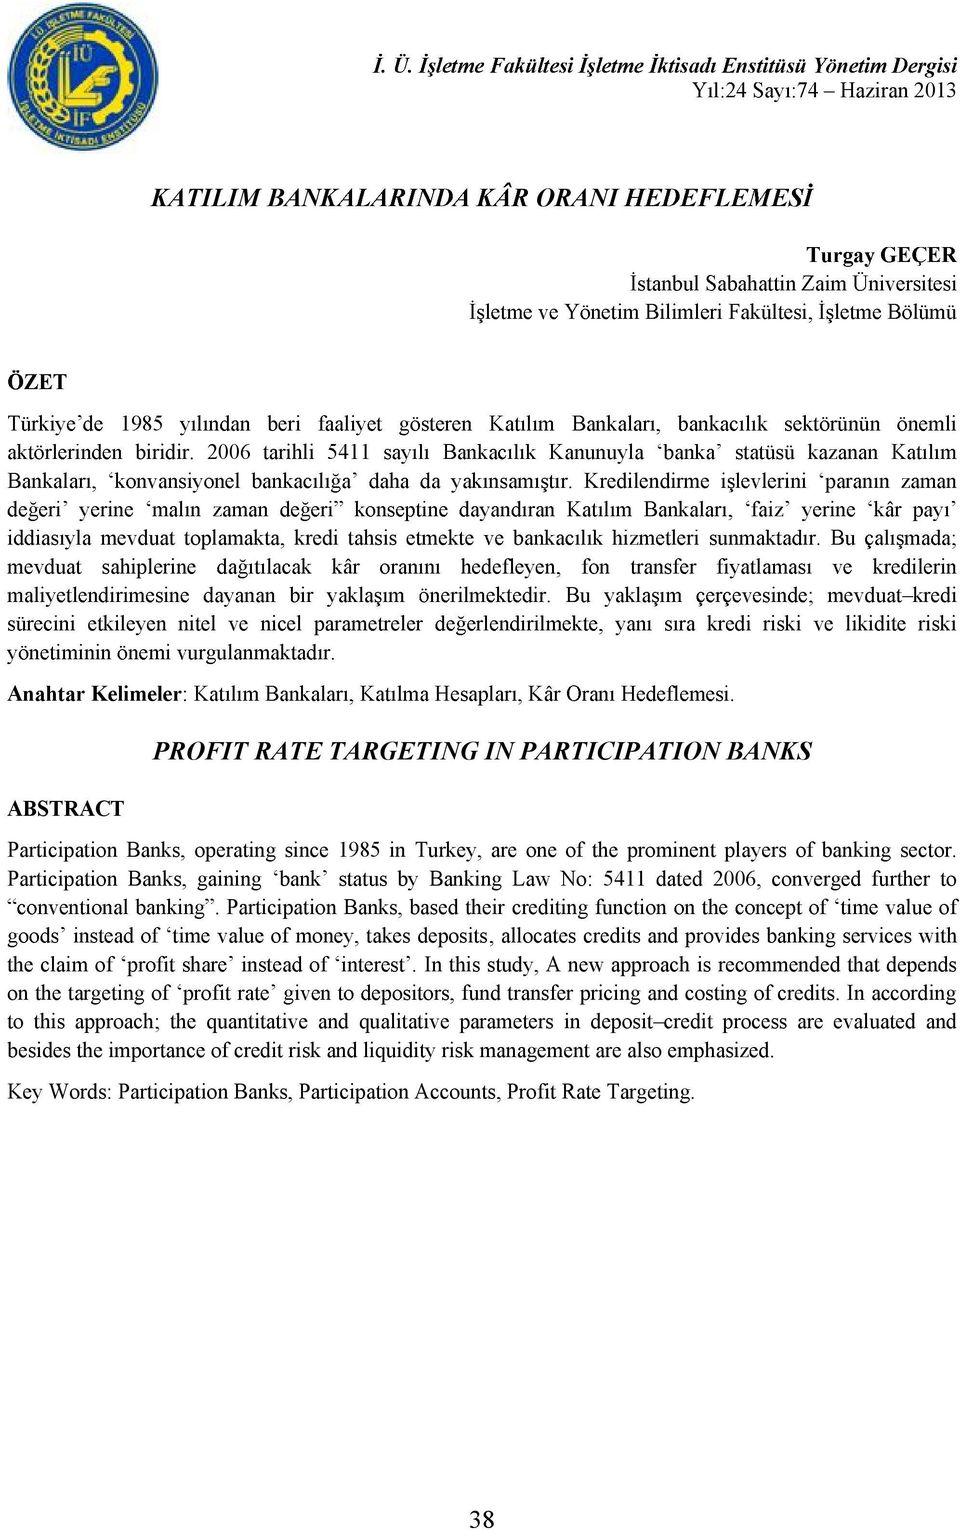 kredi riski ve likidite riski PROFIT RATE TARGETING IN PARTICIPATION BANKS ABSTRACT Participation Banks, operating since 1985 in Turkey, are one of the prominent players of banking sector.